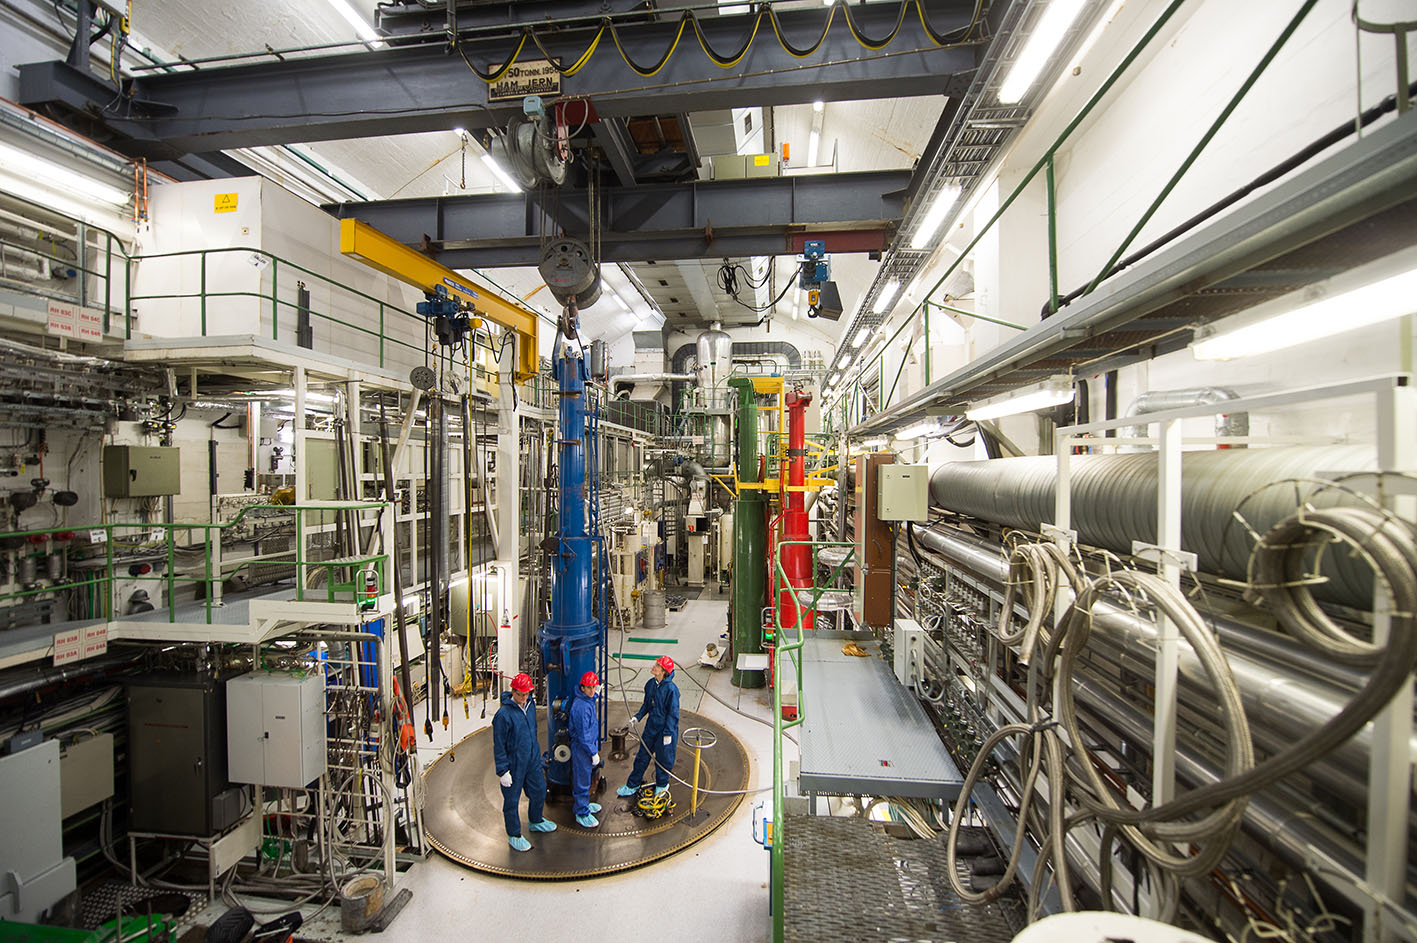 The second thorium fuel test rig being loaded into the Halden research reactor in December 2015. (Photo: T. Tandberg).